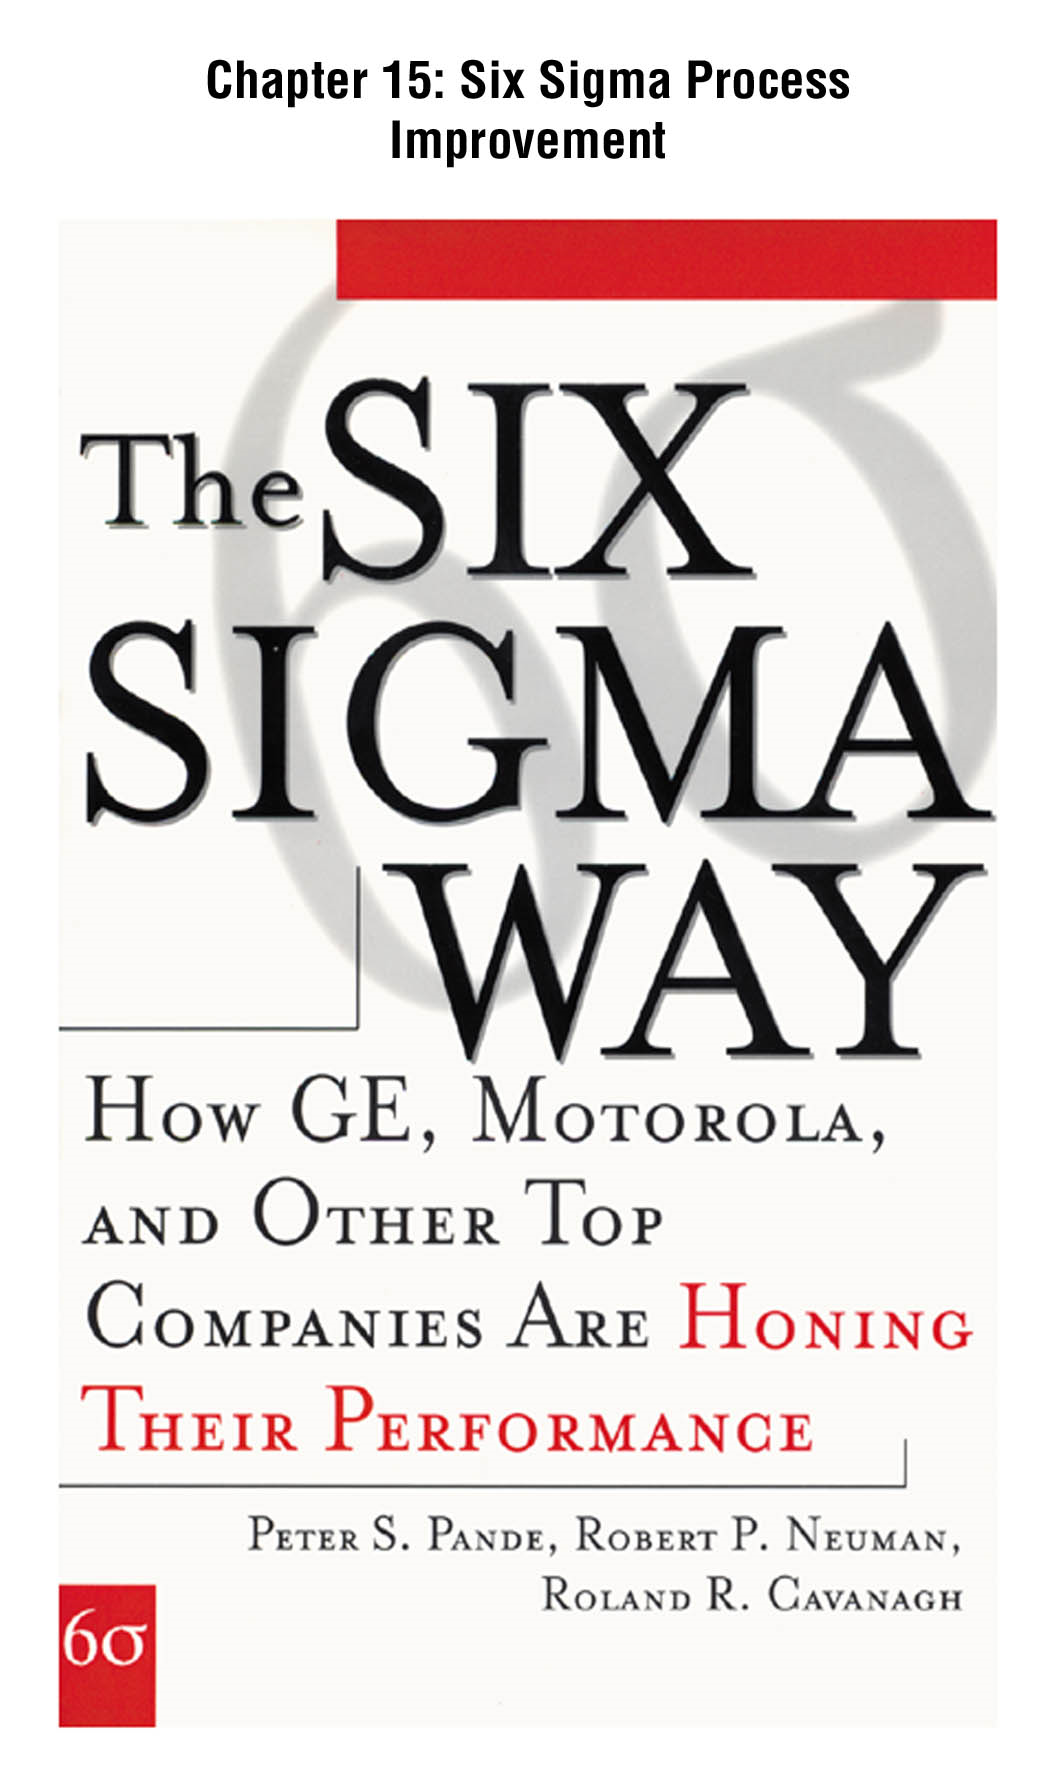 The Six Sigma Way, Chapter 15 - Six Sigma Process Improvement By: Peter Pande,Robert Neuman,Roland Cavanagh